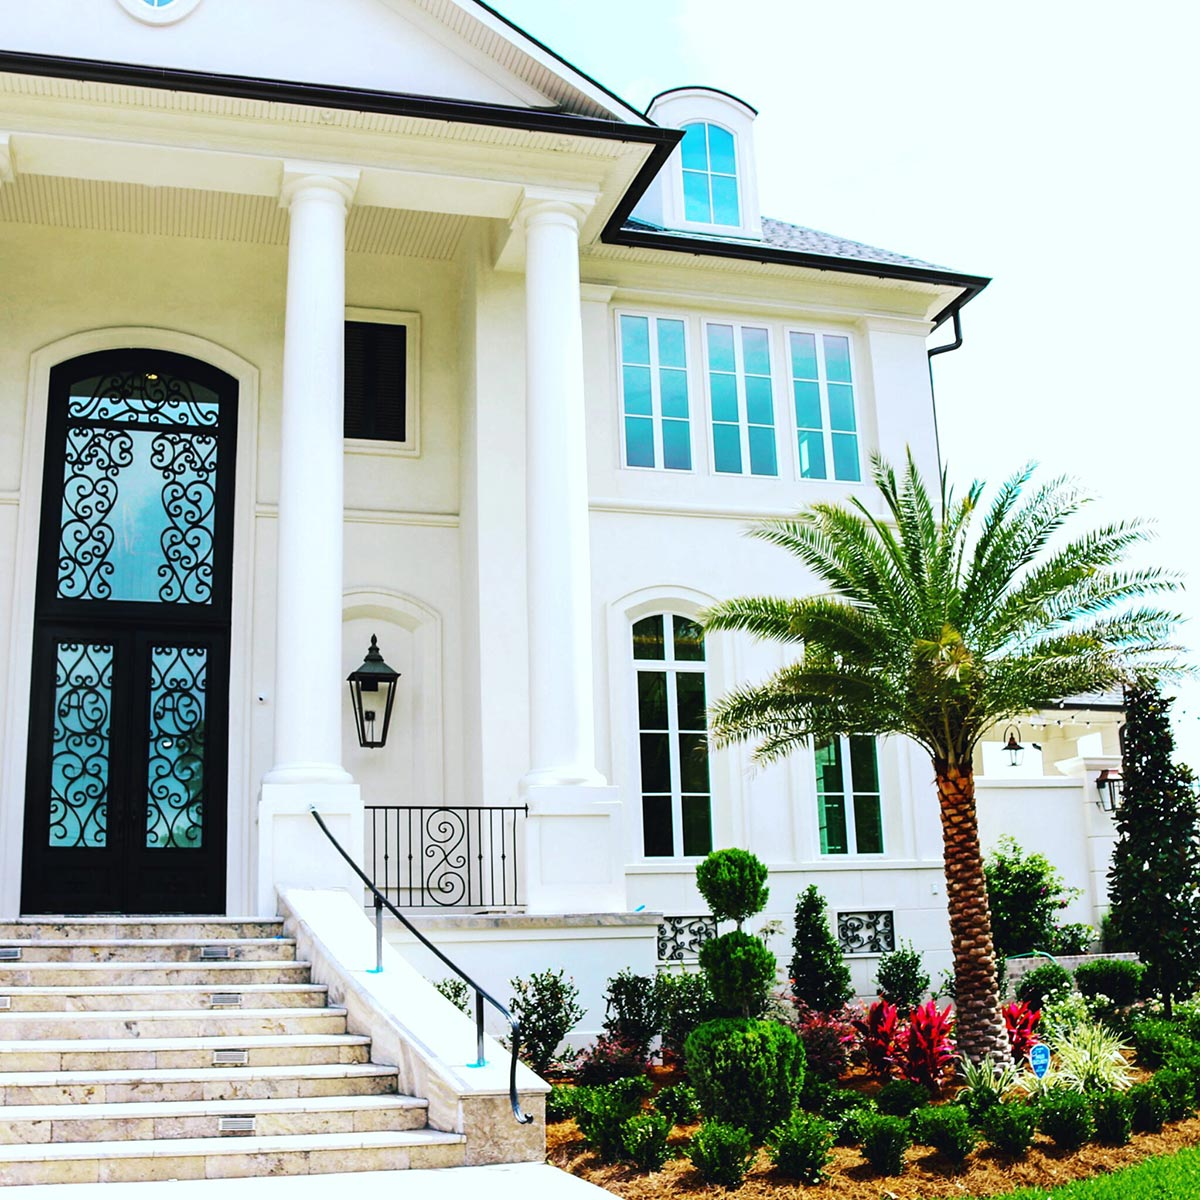 Are iron doors right for you?